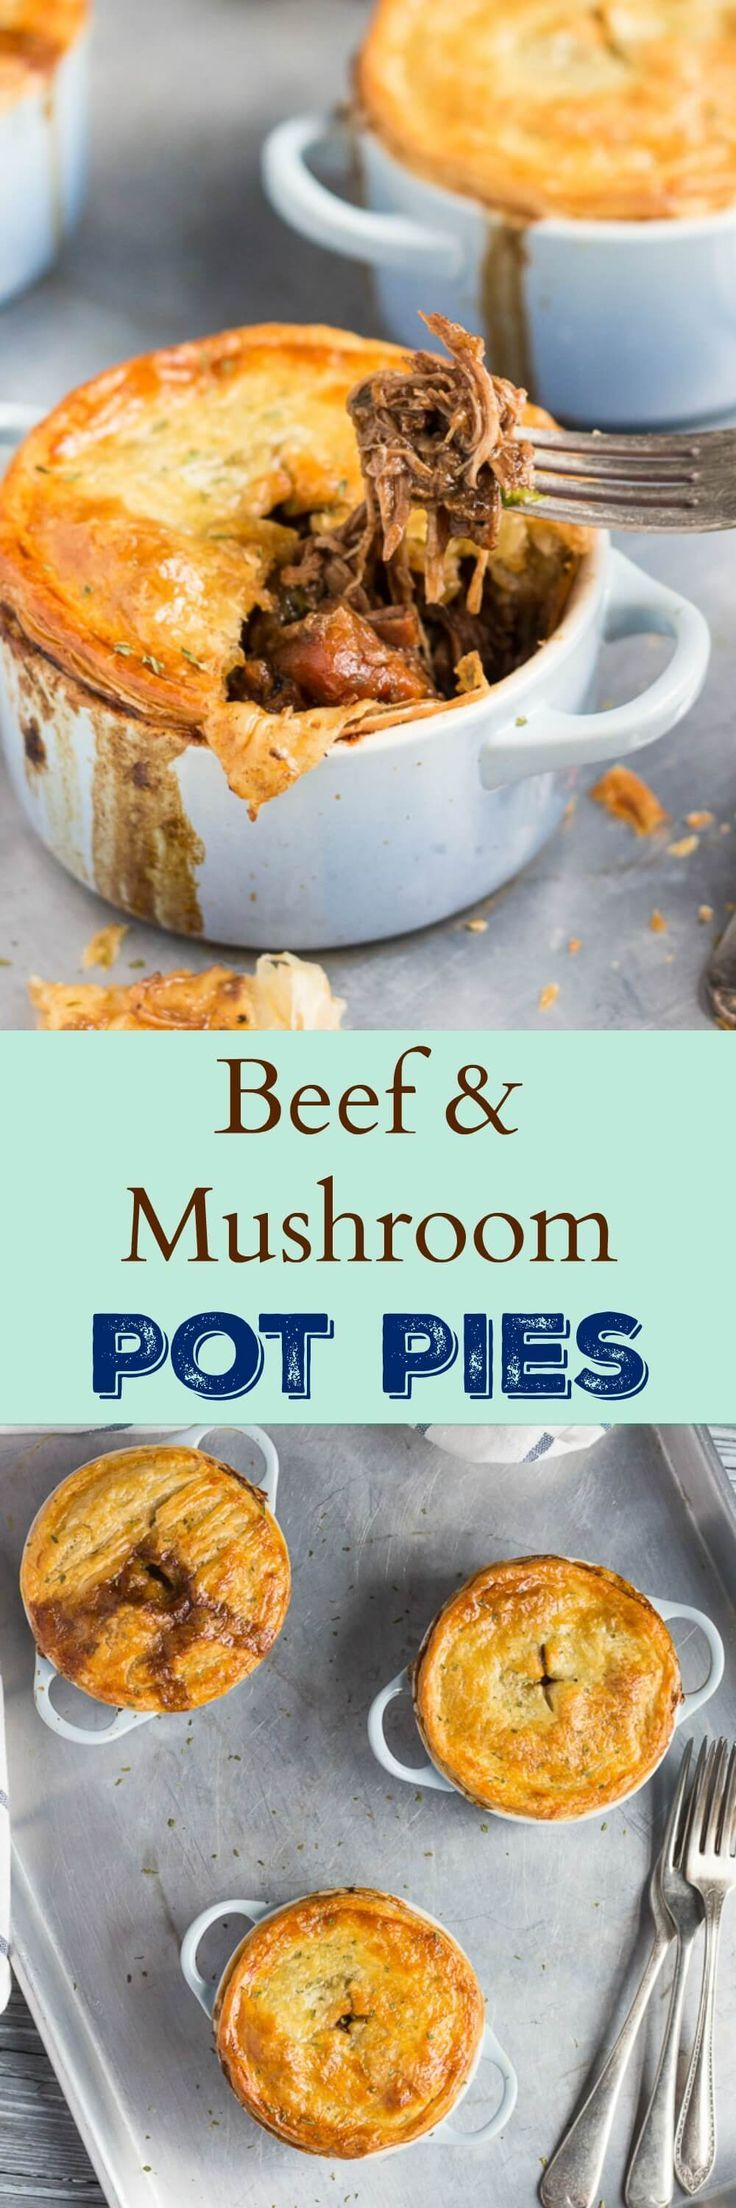 Leftover Beef & Mushroom Stew Pot Pies. Take leftover beef and mushroom stew from the freezer, add a sheet of puff pastry, and put an impressive meal on the table in under an hour.